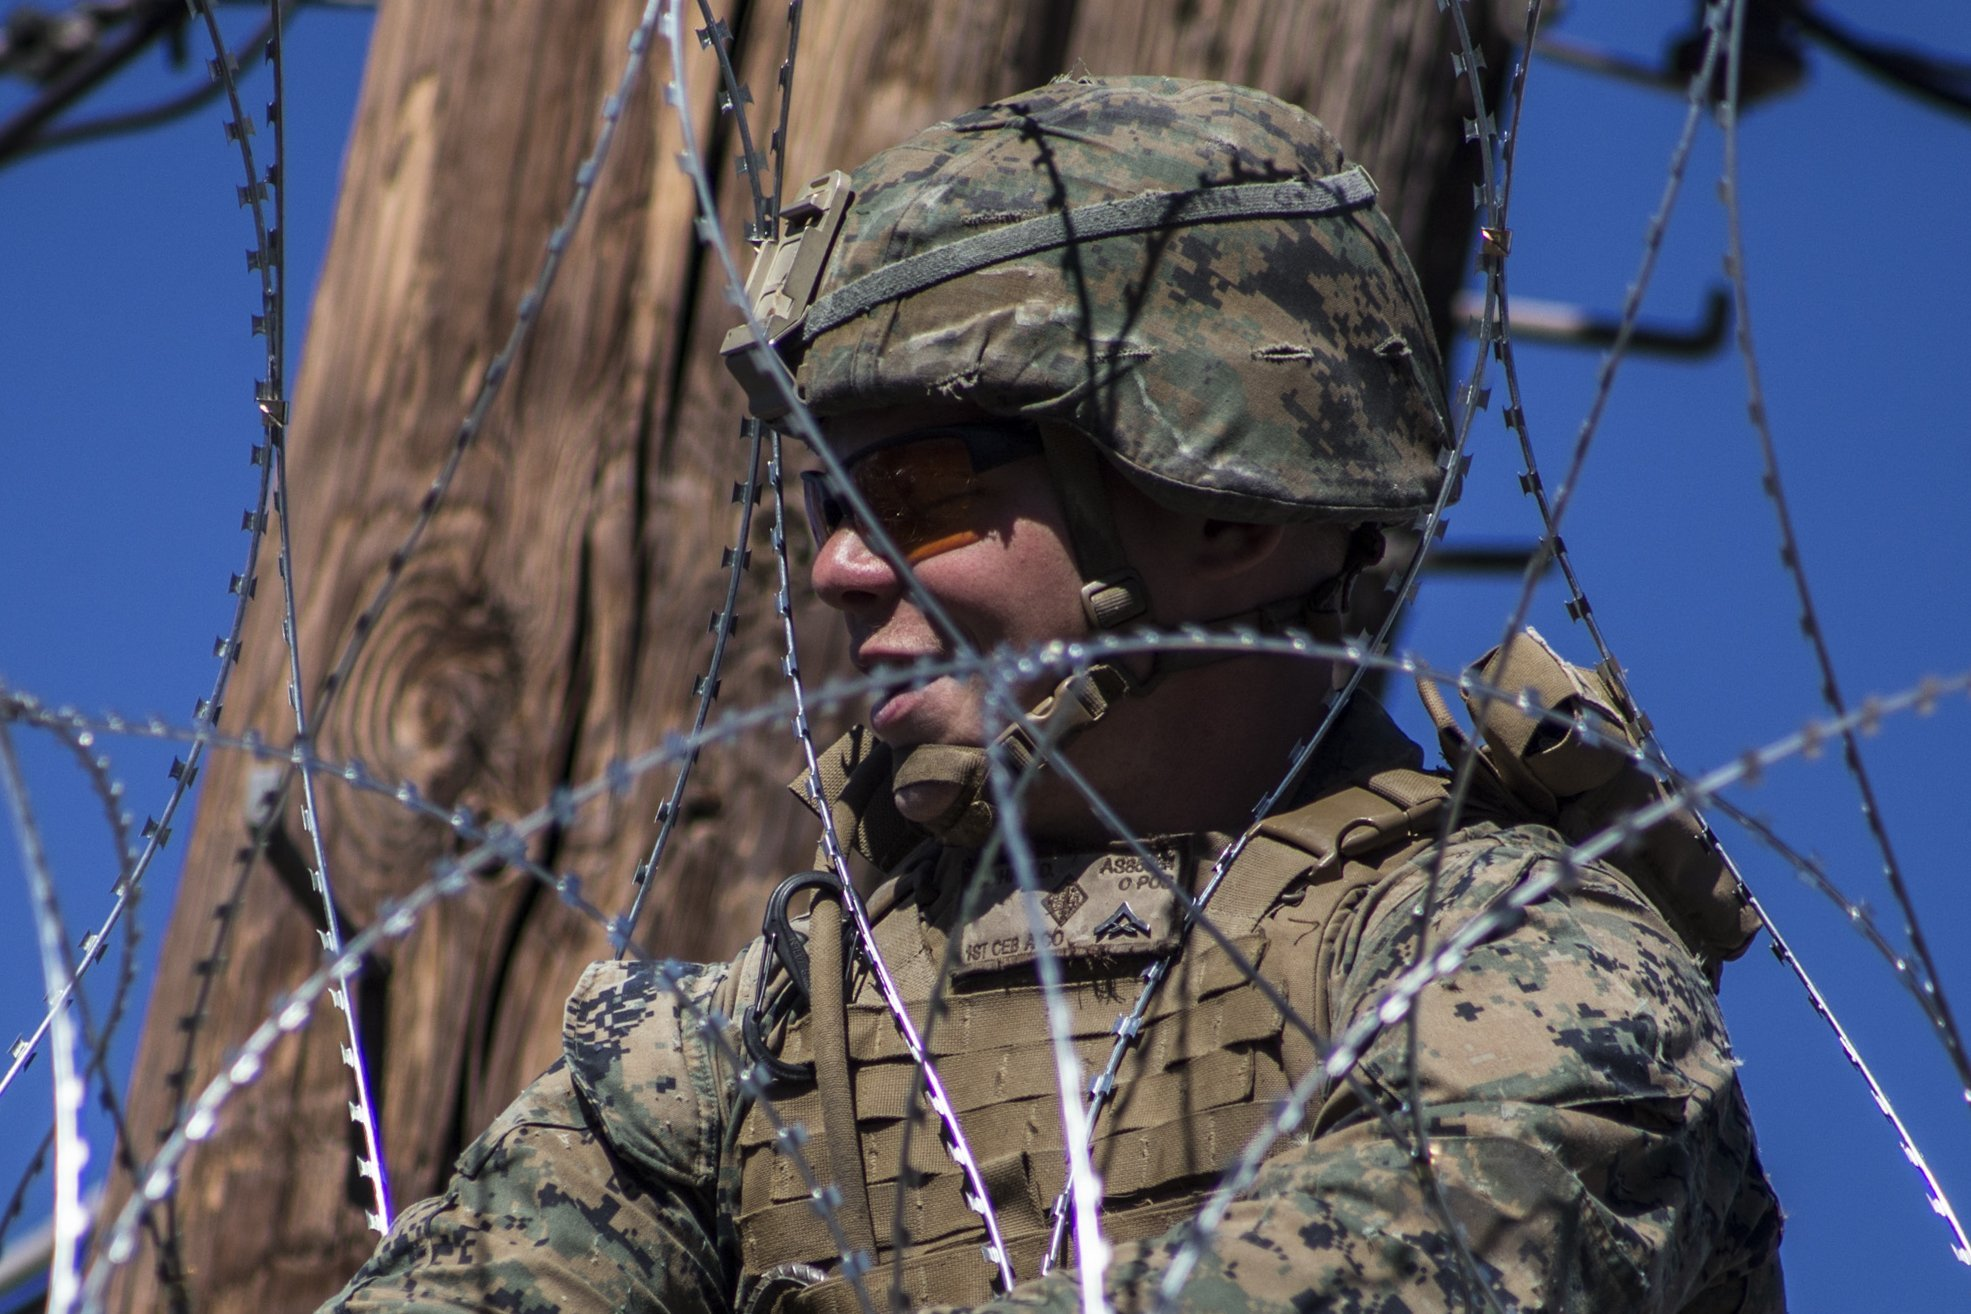 An Army soldier seen from the Mexican side of the U.S.-Mexico border wall in Mexicali, Mexico   Photo: Getty Images